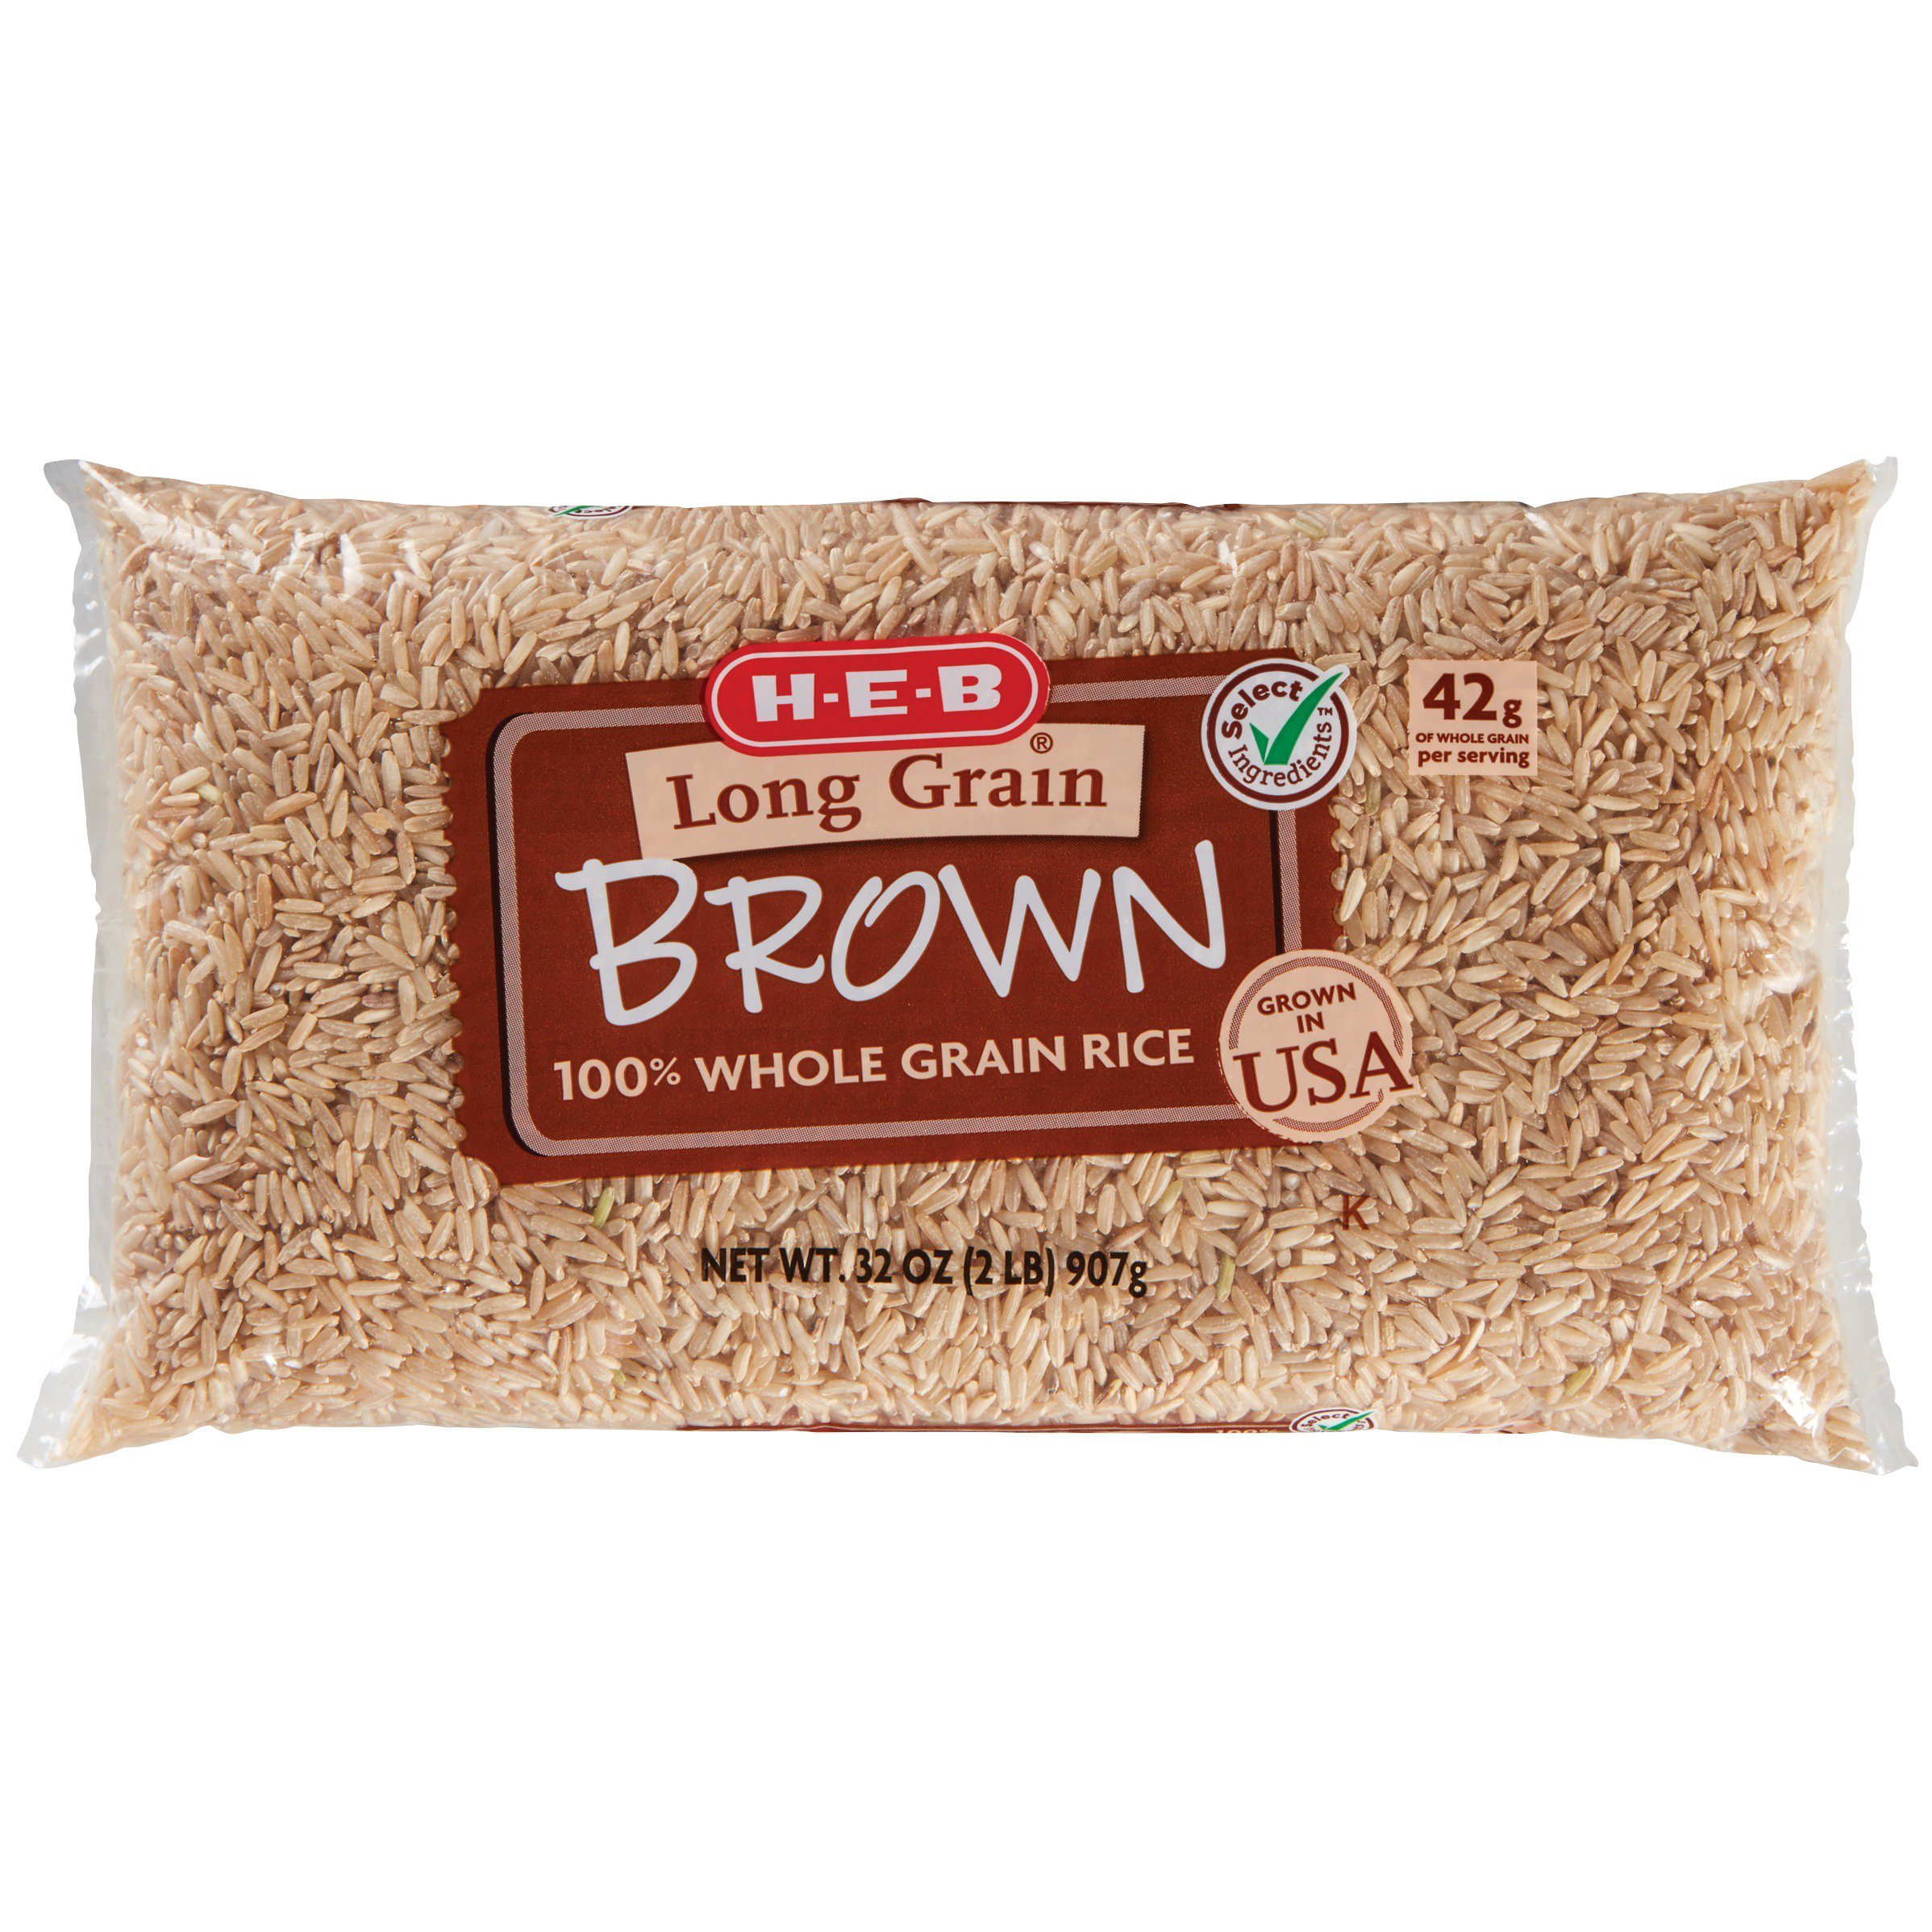 Rice Grains Shop Heb Everyday Low Prices Pure Green Organic Long Grain 1 Kg H E B 100 Whole Brown